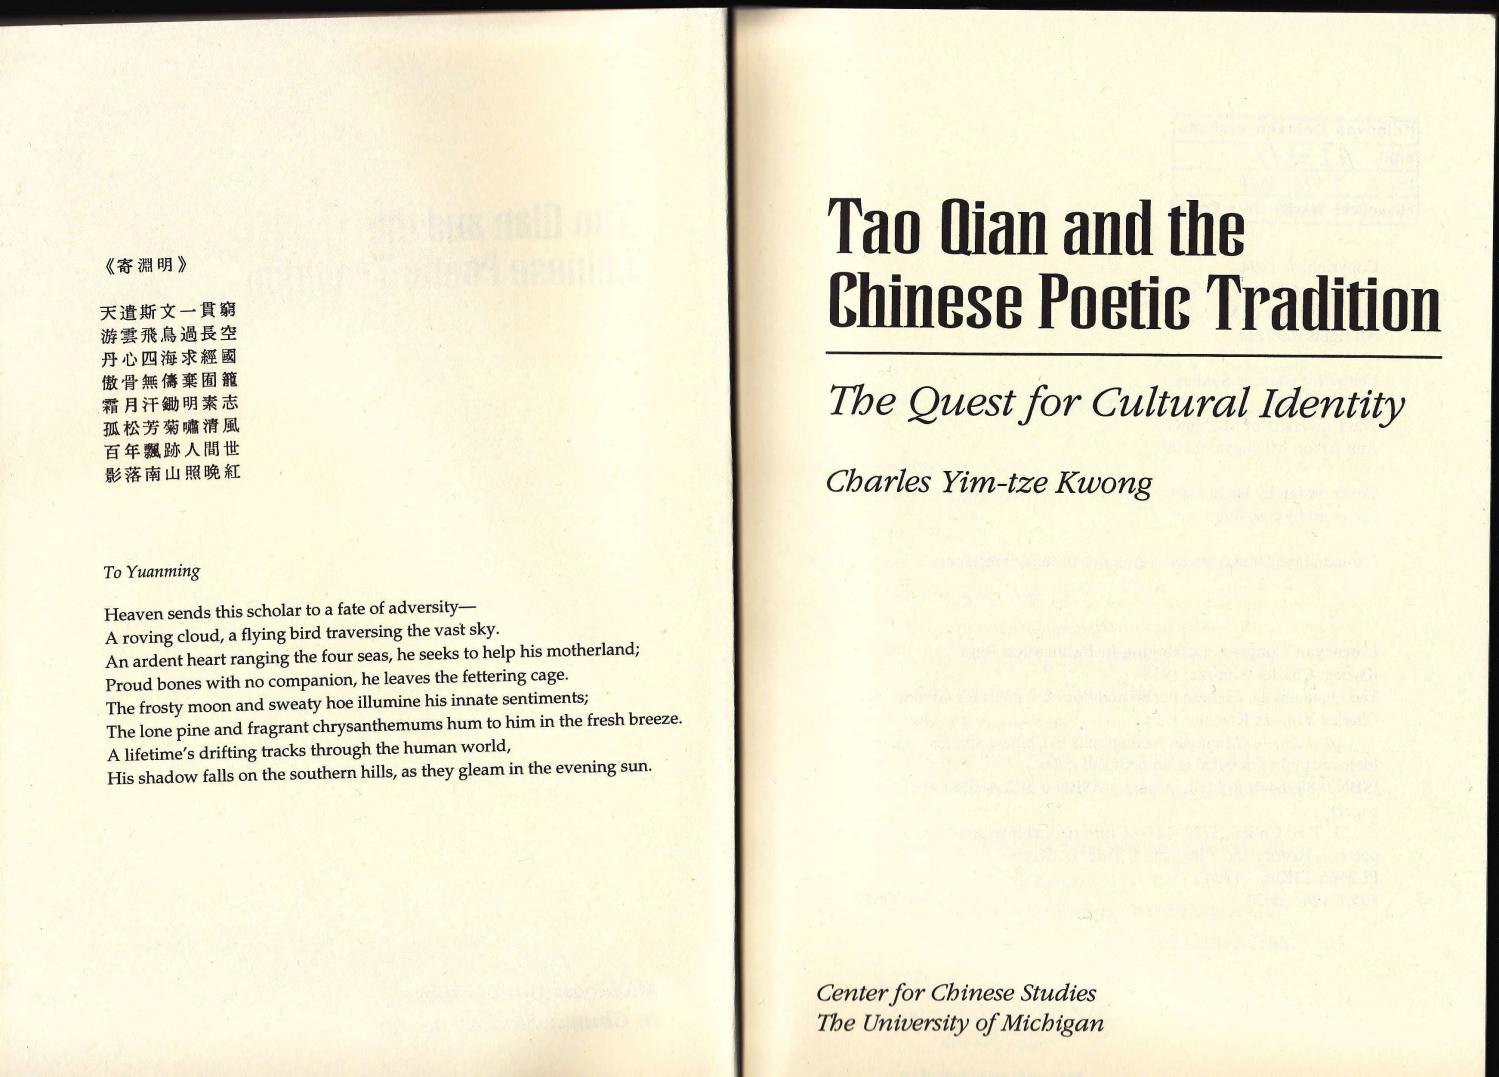 Tao Qian And The Chinese Poetic Tradition I By Kim Hyeong Jun Issuu